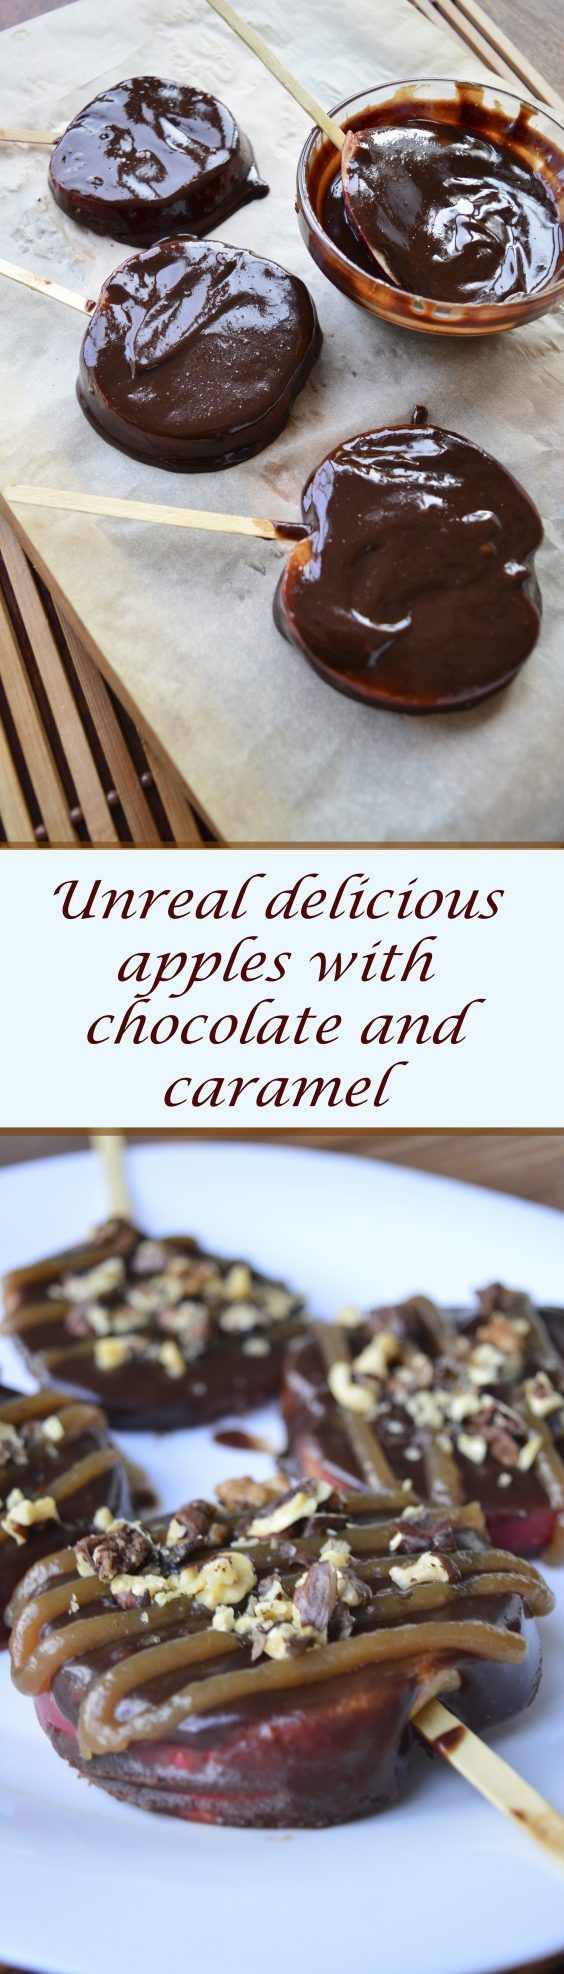 Unreal delicious apples with chocolate and caramel